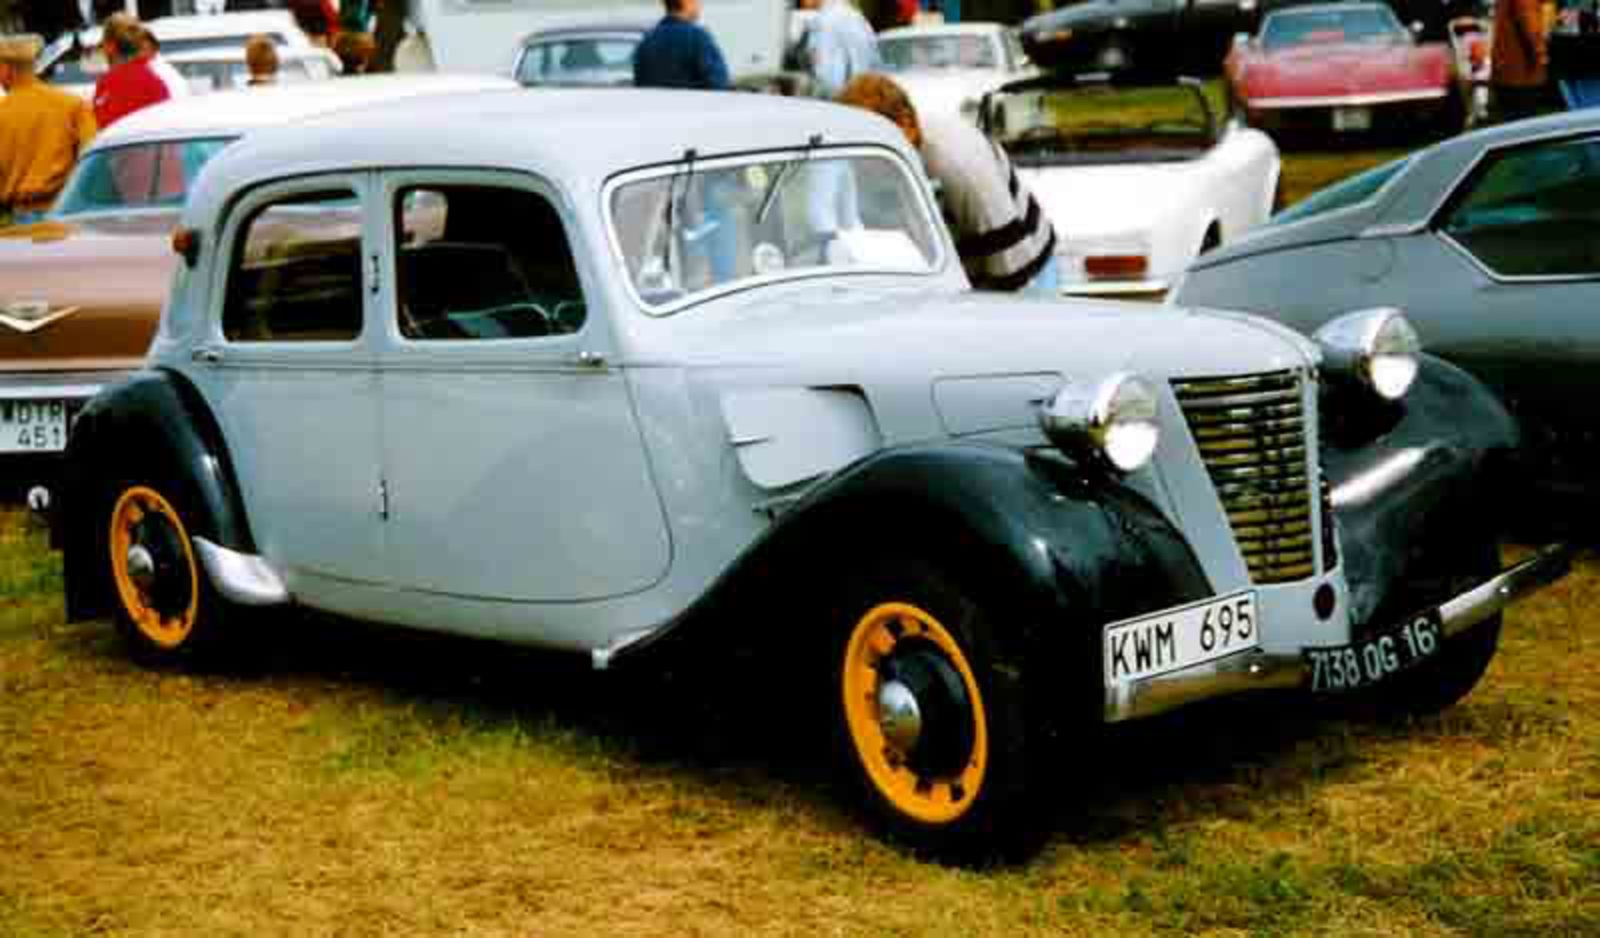 File:Citroen B11 Berline 1938.jpg. No higher resolution available.